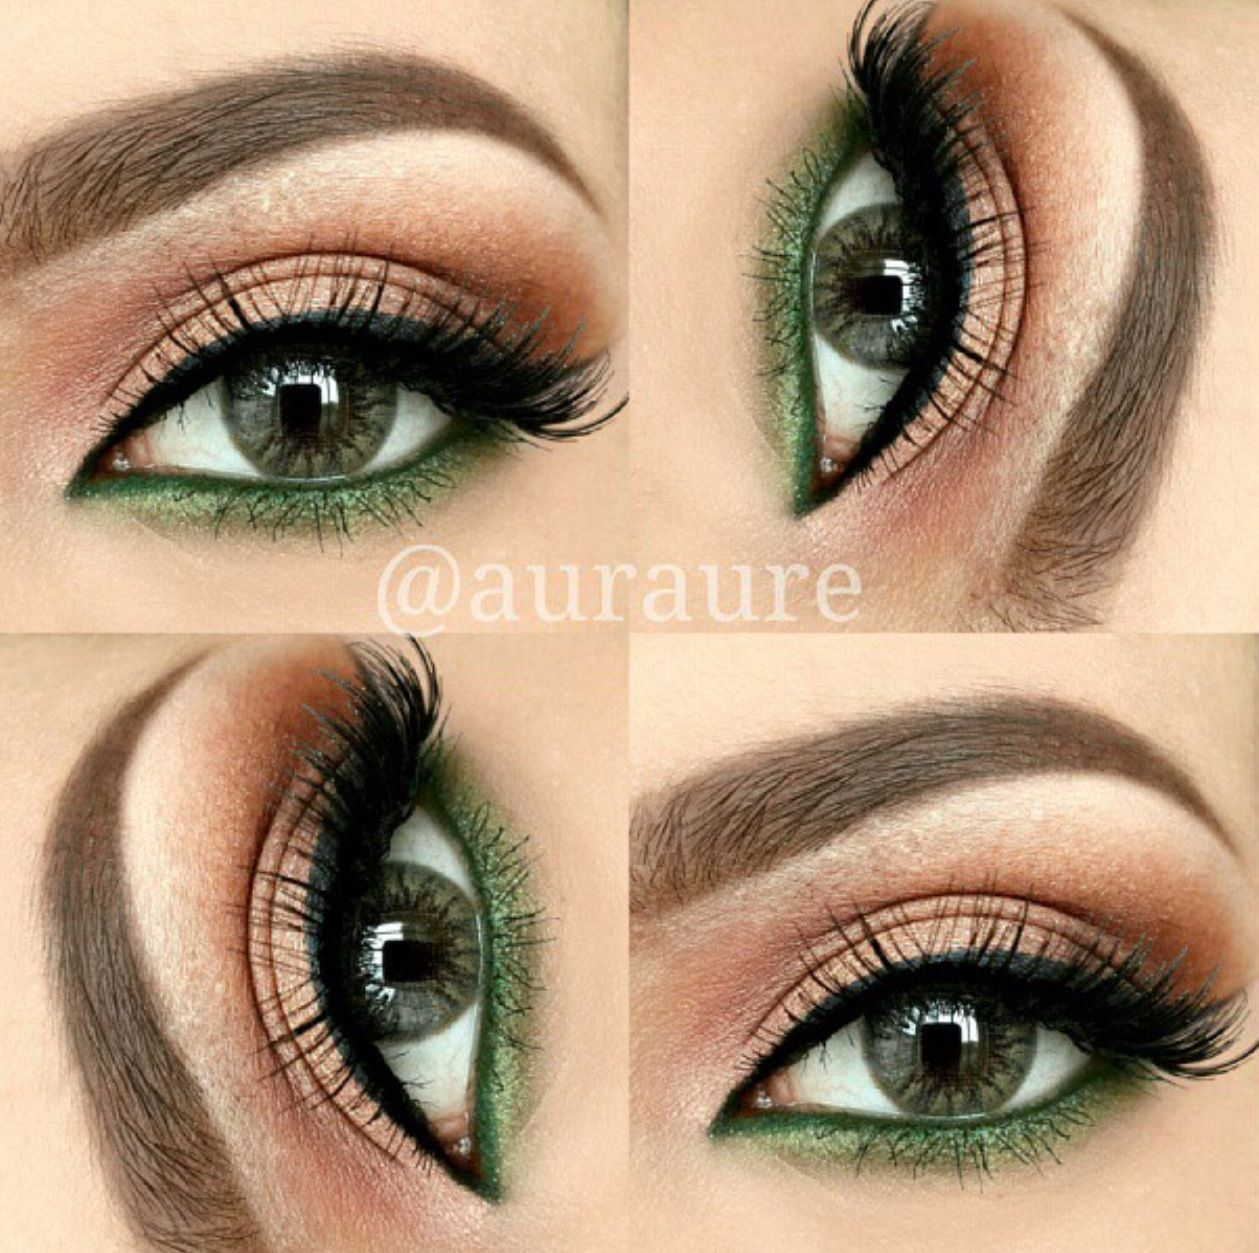 pingl par elisa sur make up en 2019 maquillaje maquillaje makeup et maquillaje verde. Black Bedroom Furniture Sets. Home Design Ideas